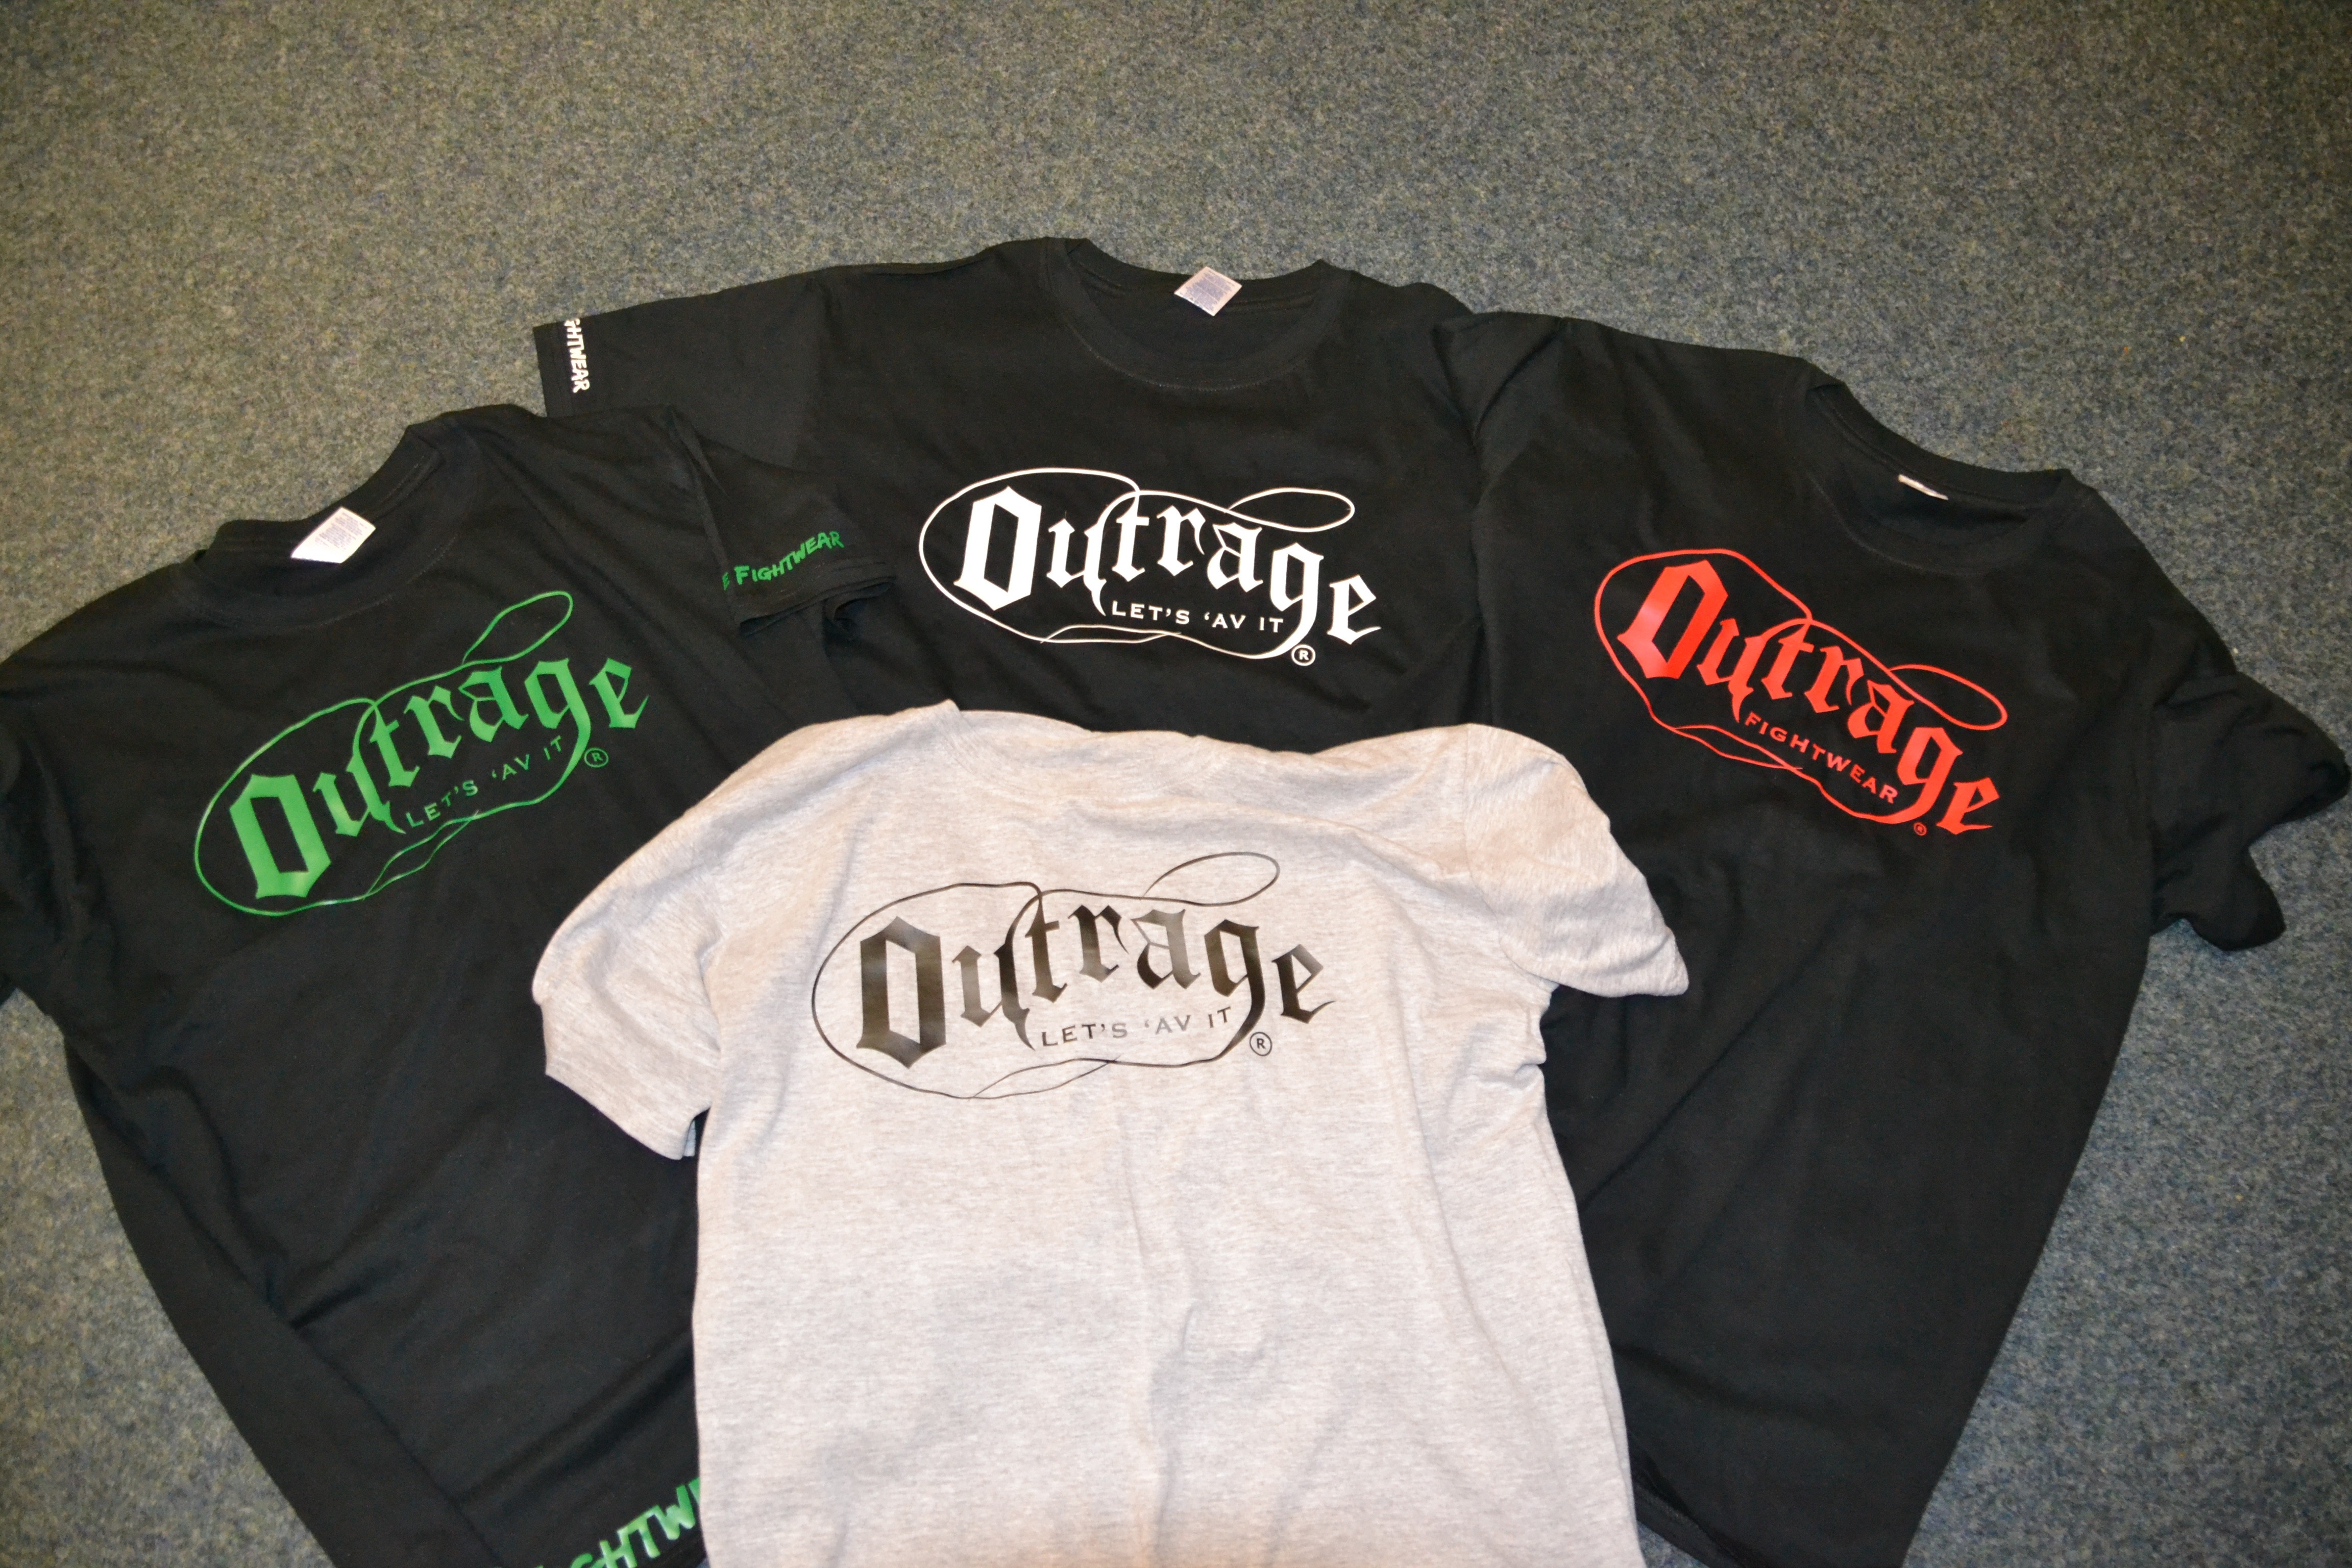 Outrage Clothing